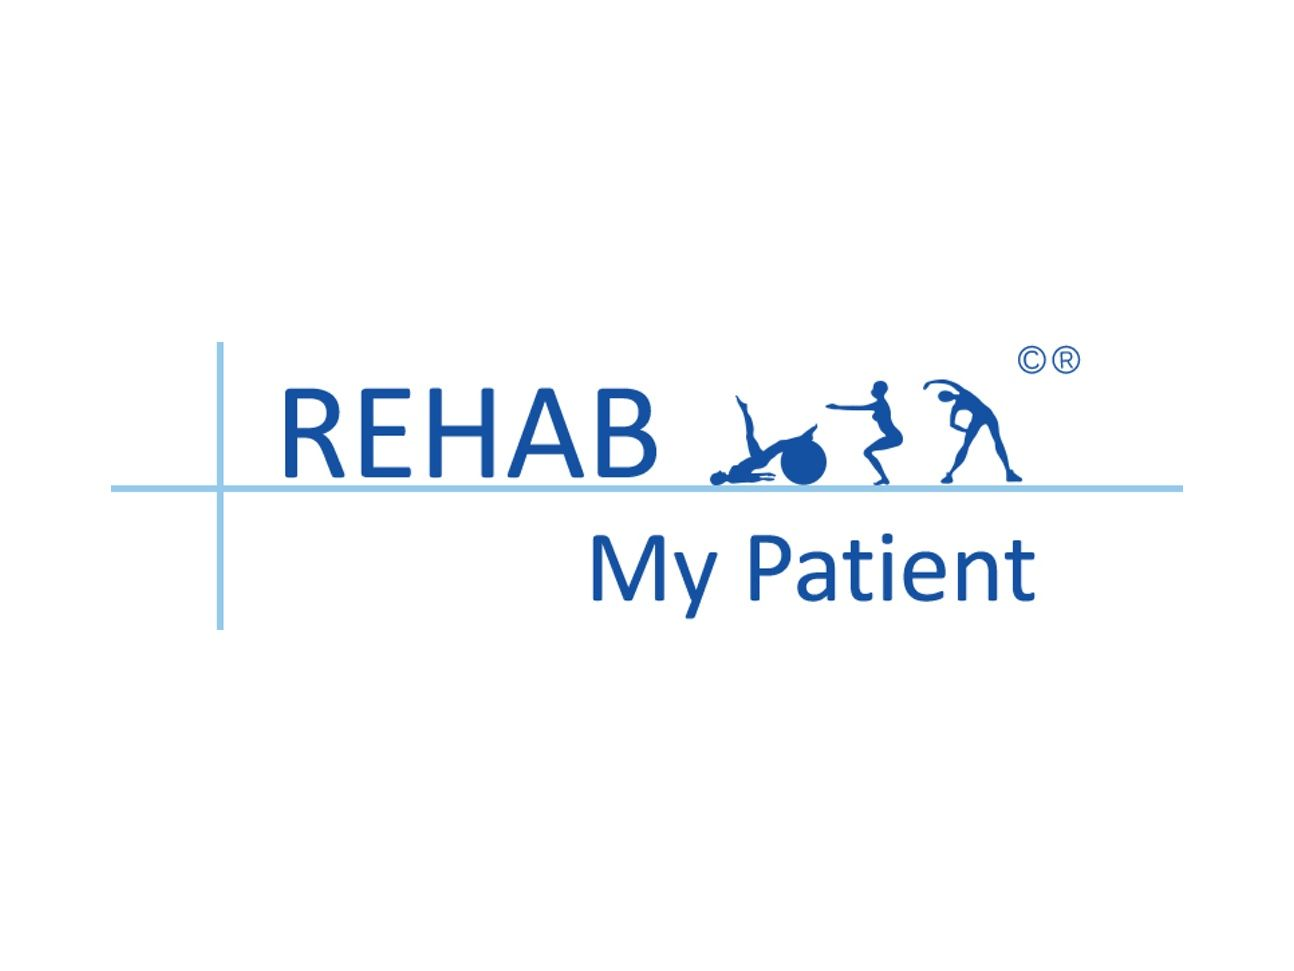 Rehab my patient